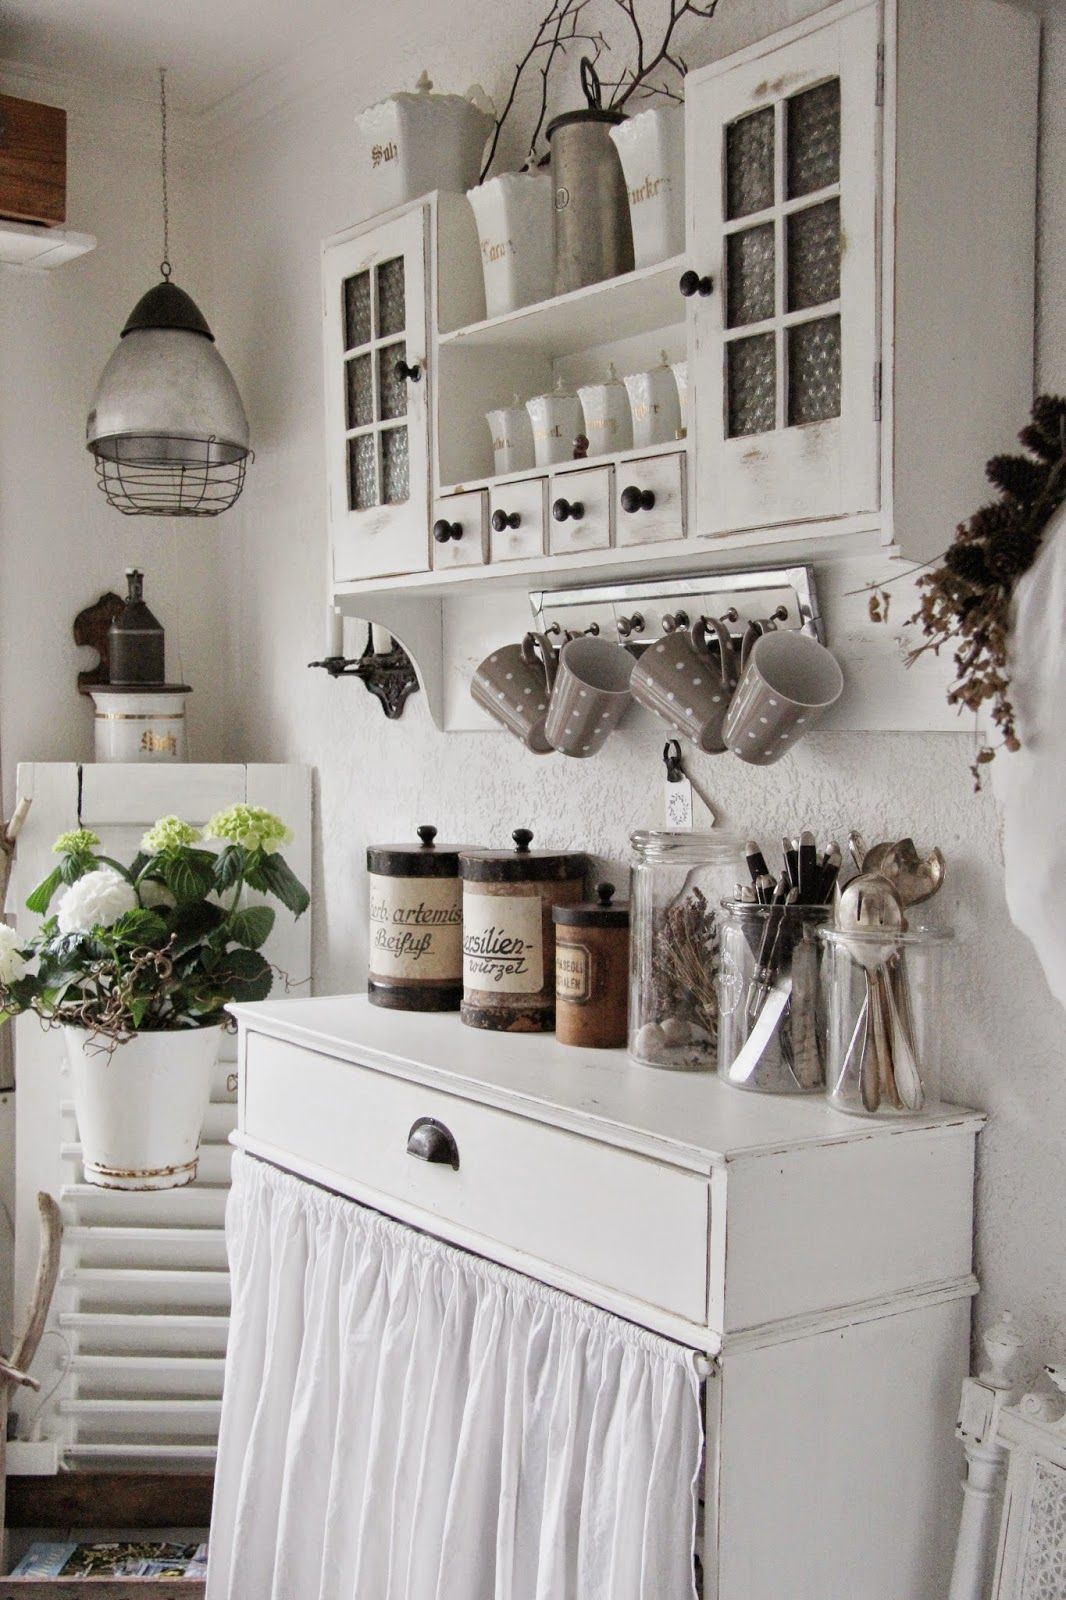 The Key To Shabby Chic Kitchen Décor Is Simplicity And Plainness Shabby Chic Kitchen Decor Chic Kitchen Decor Shabby Chic Kitchen